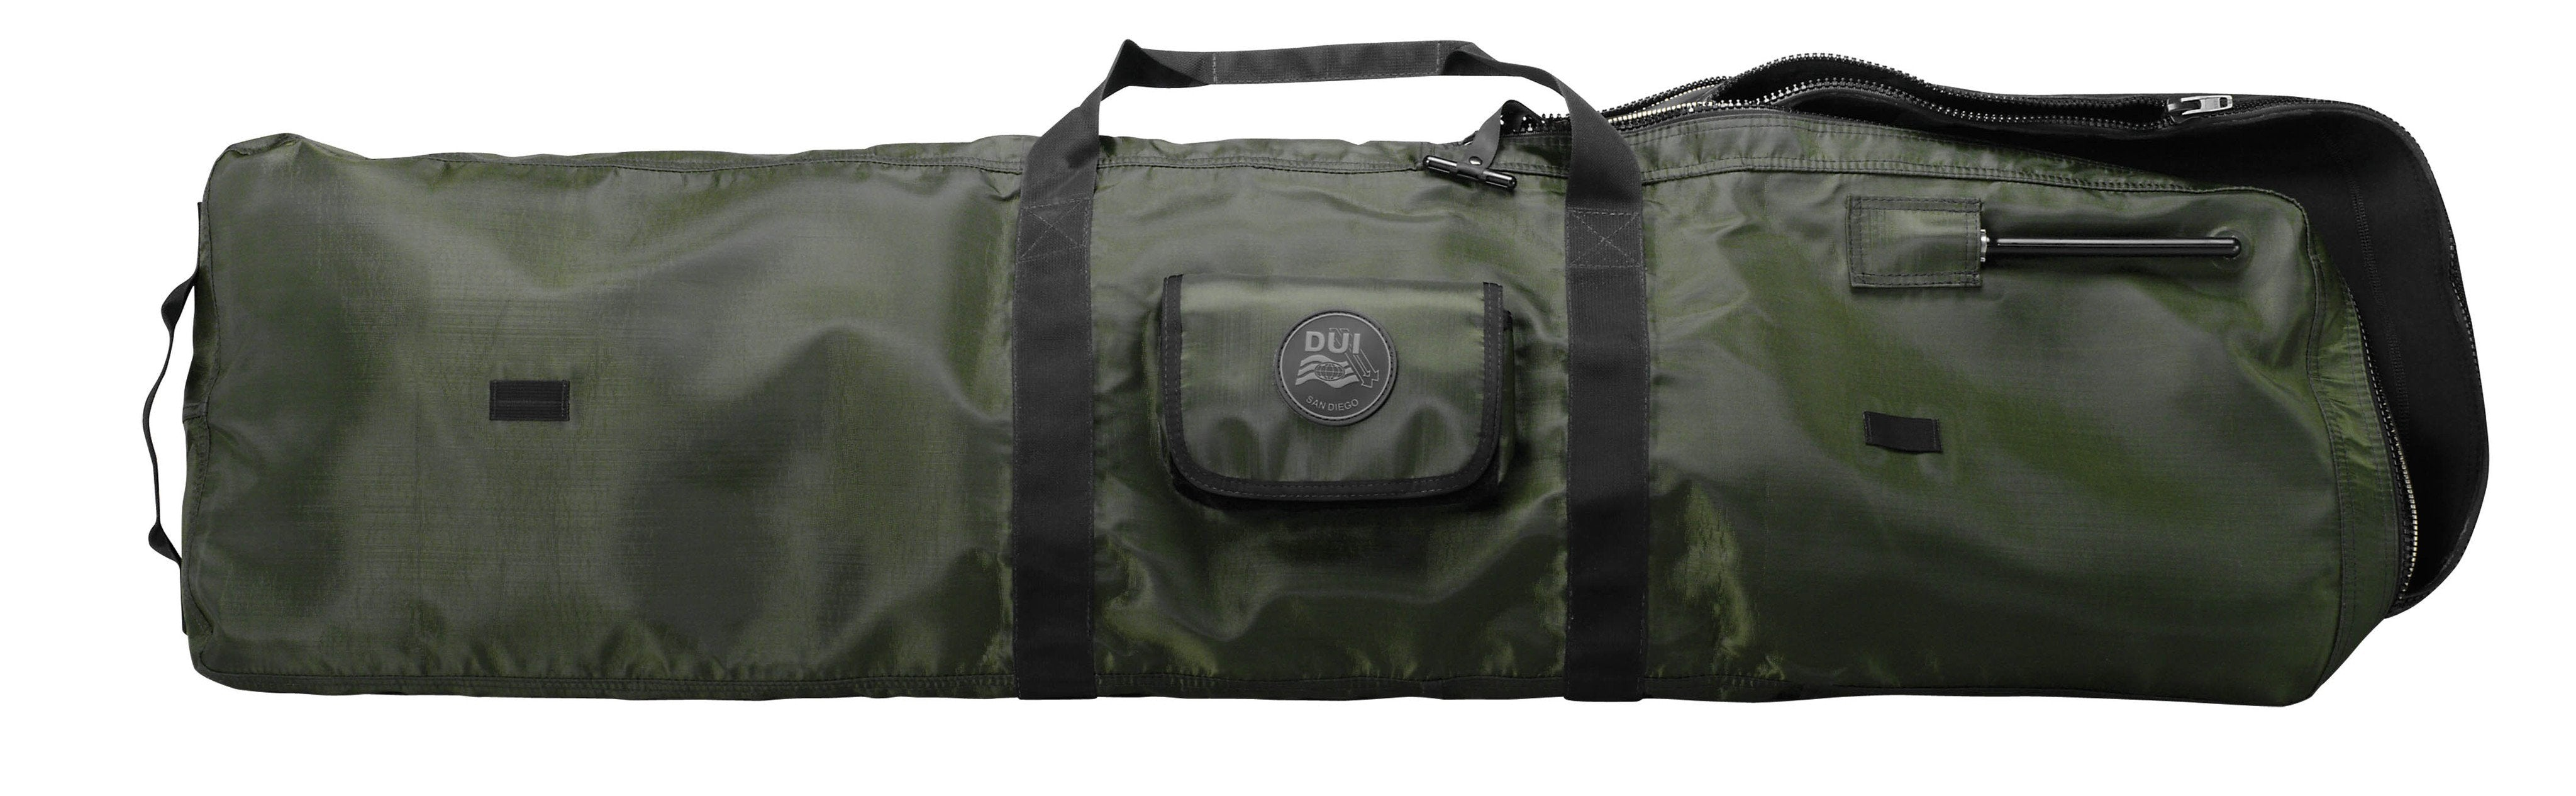 33017af6acb Large Weapons Bag with CF200 Liner - DiveDUI Military